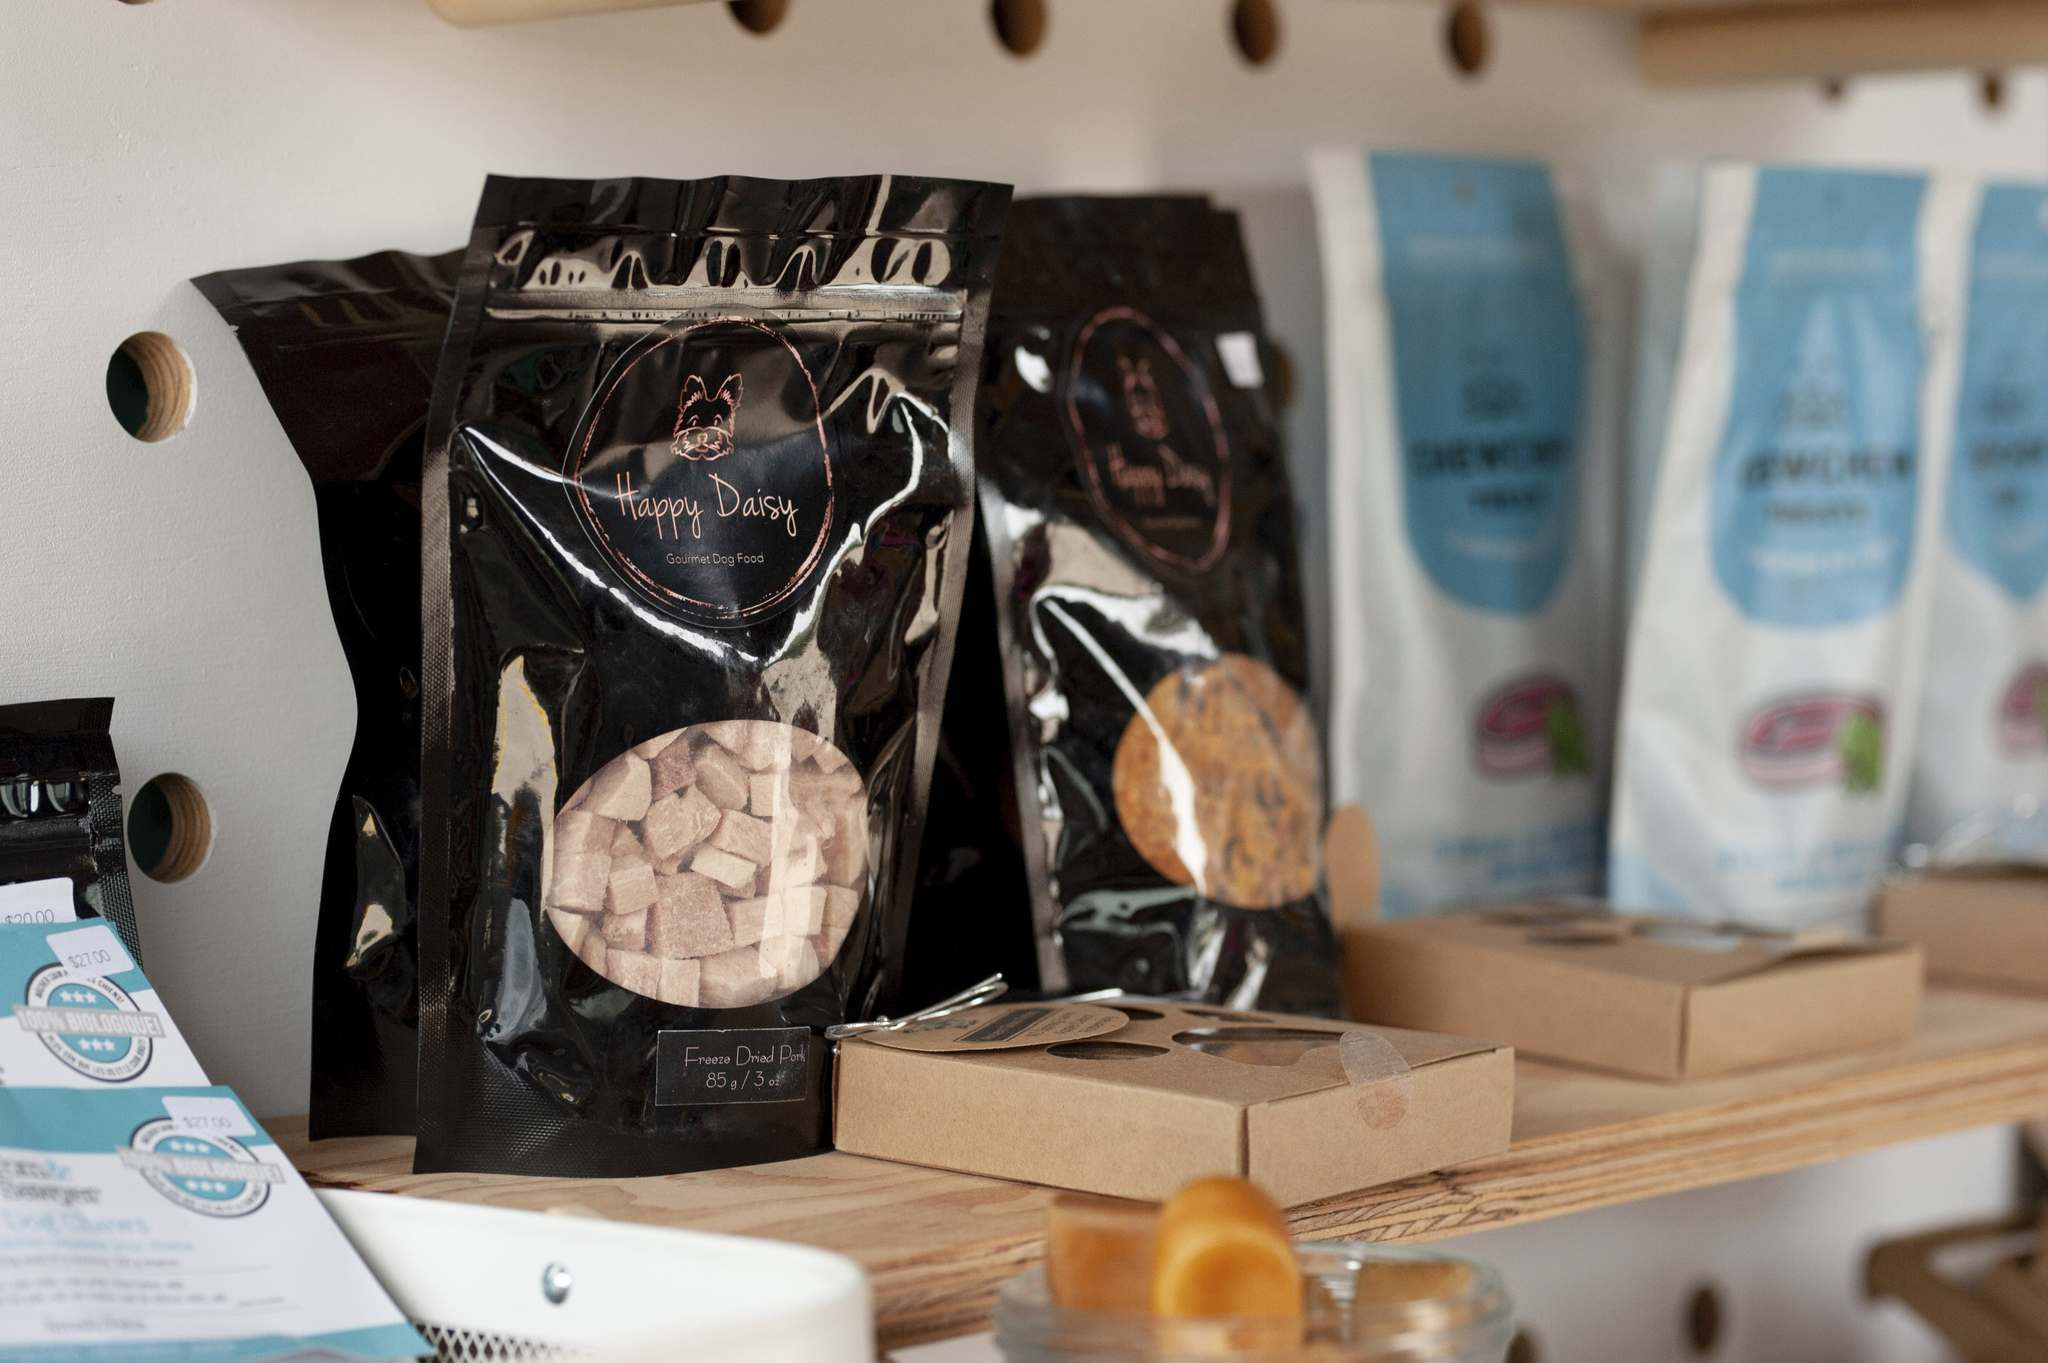 Happy Daisy Gourmet Dogfood is a Winnipeg enterprise that, among other delicacies, offers kangaroo jerky, freeze-dried bison and salmon-trail-mix cookies. (Mike Sudoma / Winnipeg Free Press)